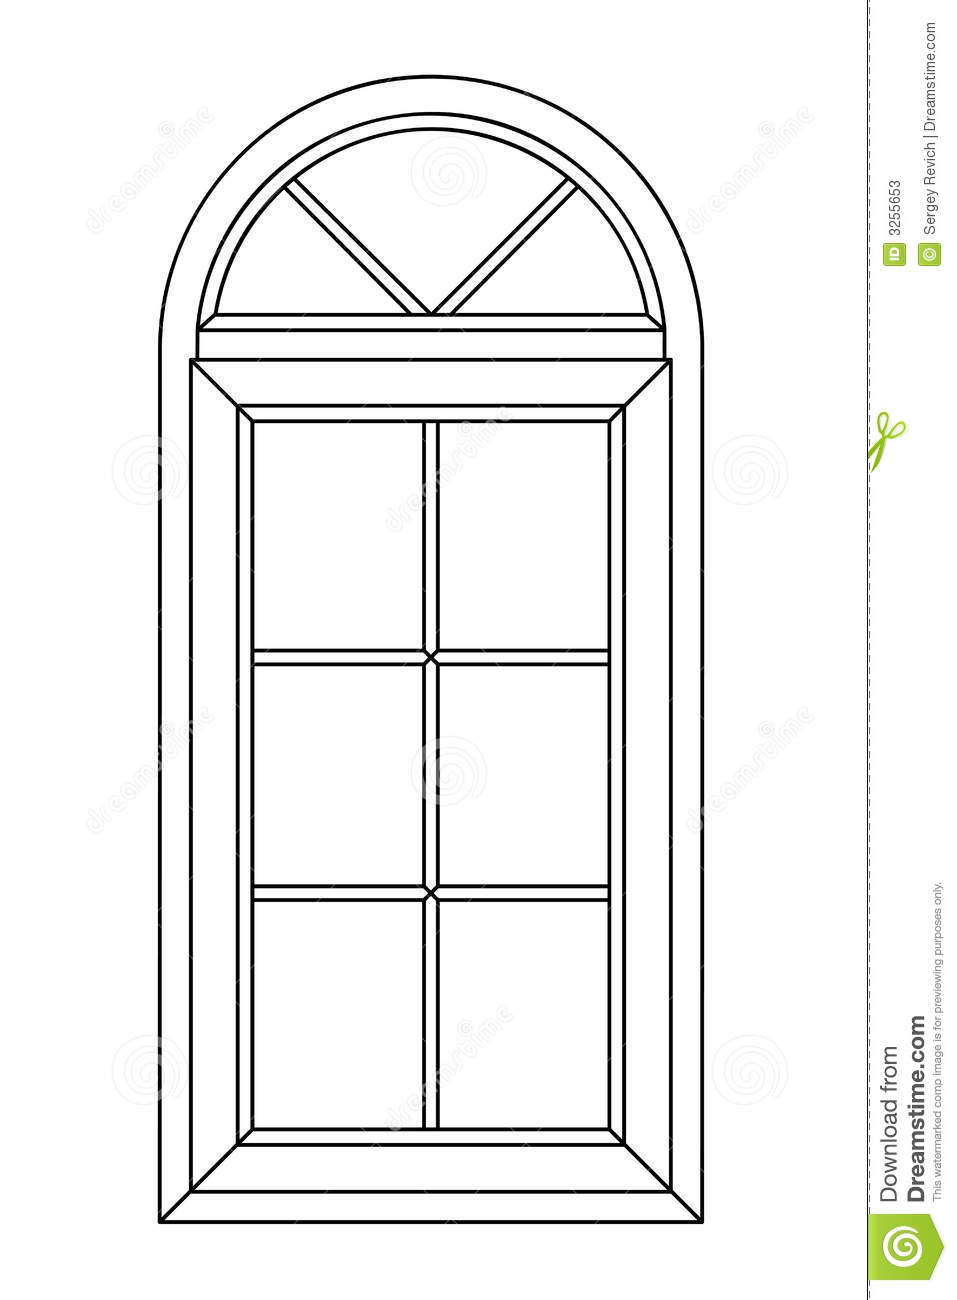 planimetric arch window stock illustration image of drawing 3255653. Black Bedroom Furniture Sets. Home Design Ideas